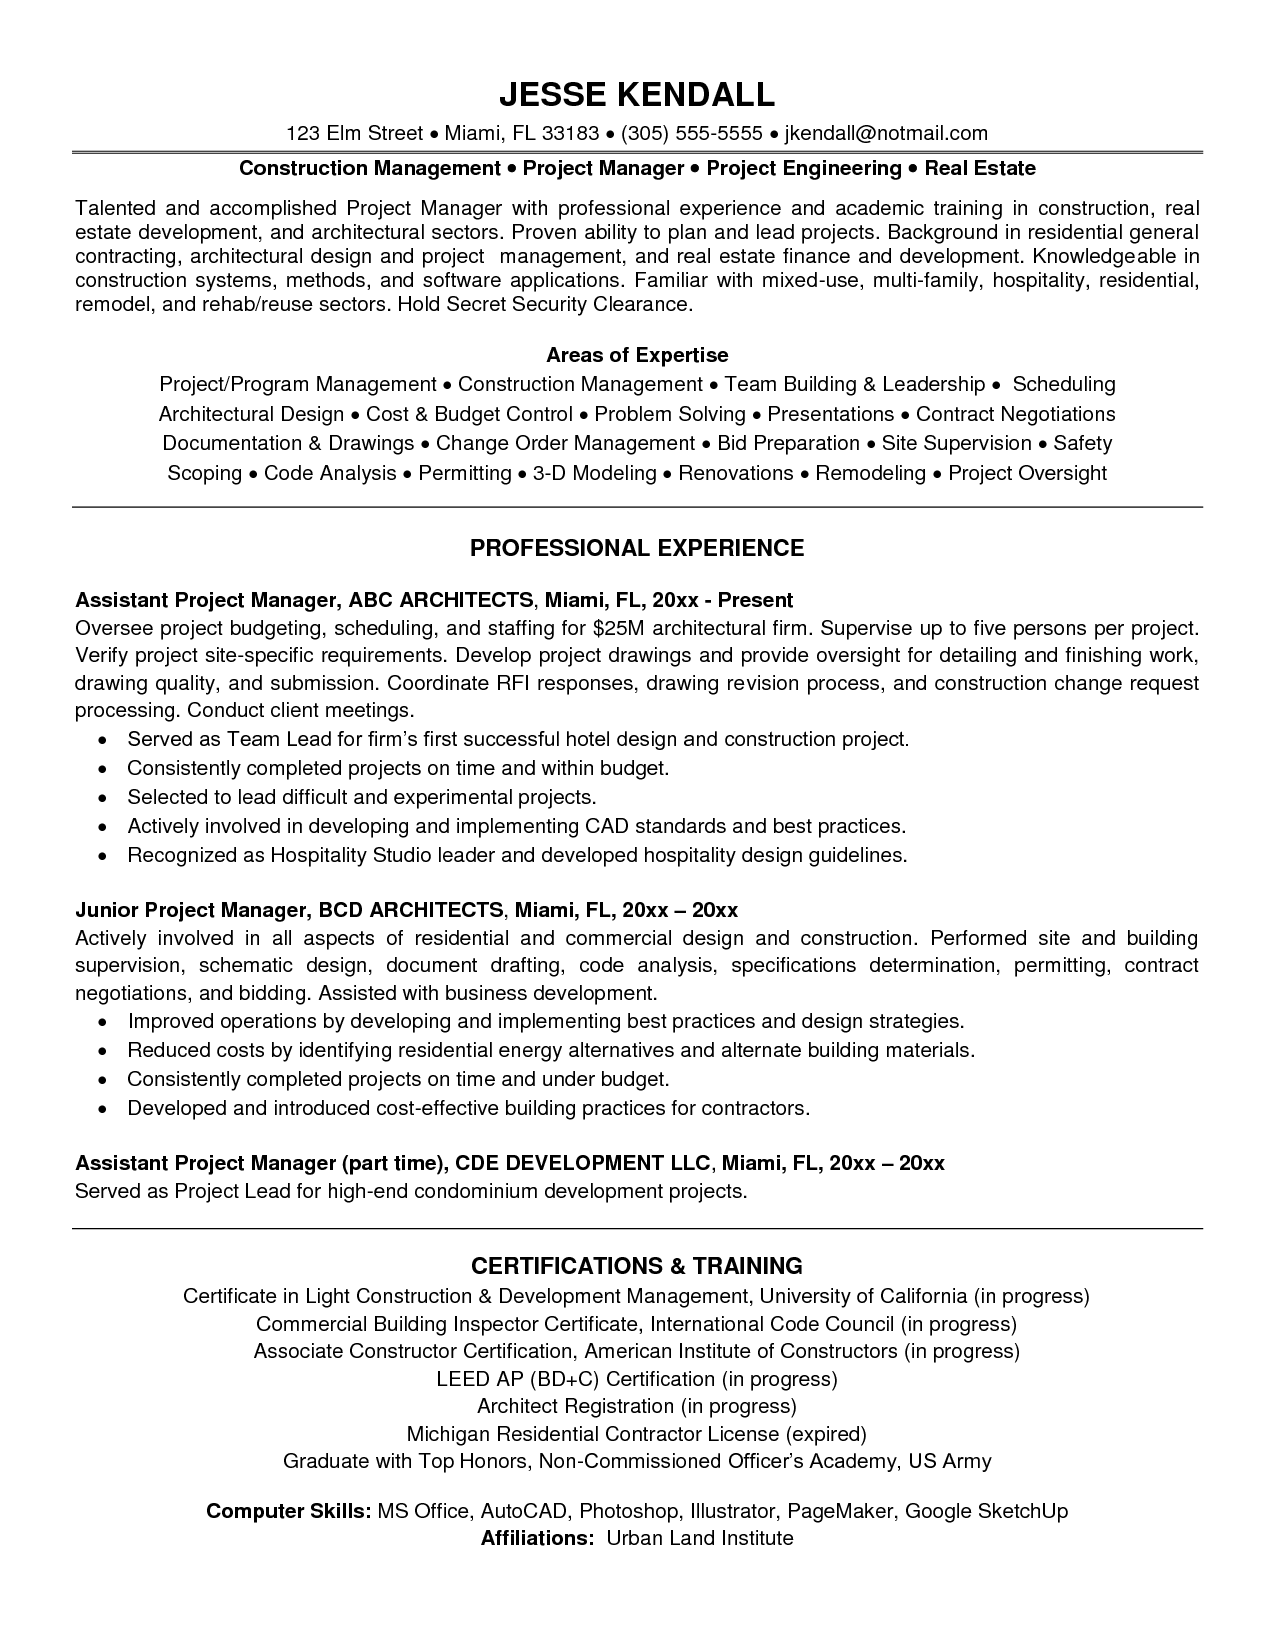 Resume Templates Project Manager  Get Instant Risk Free Access To